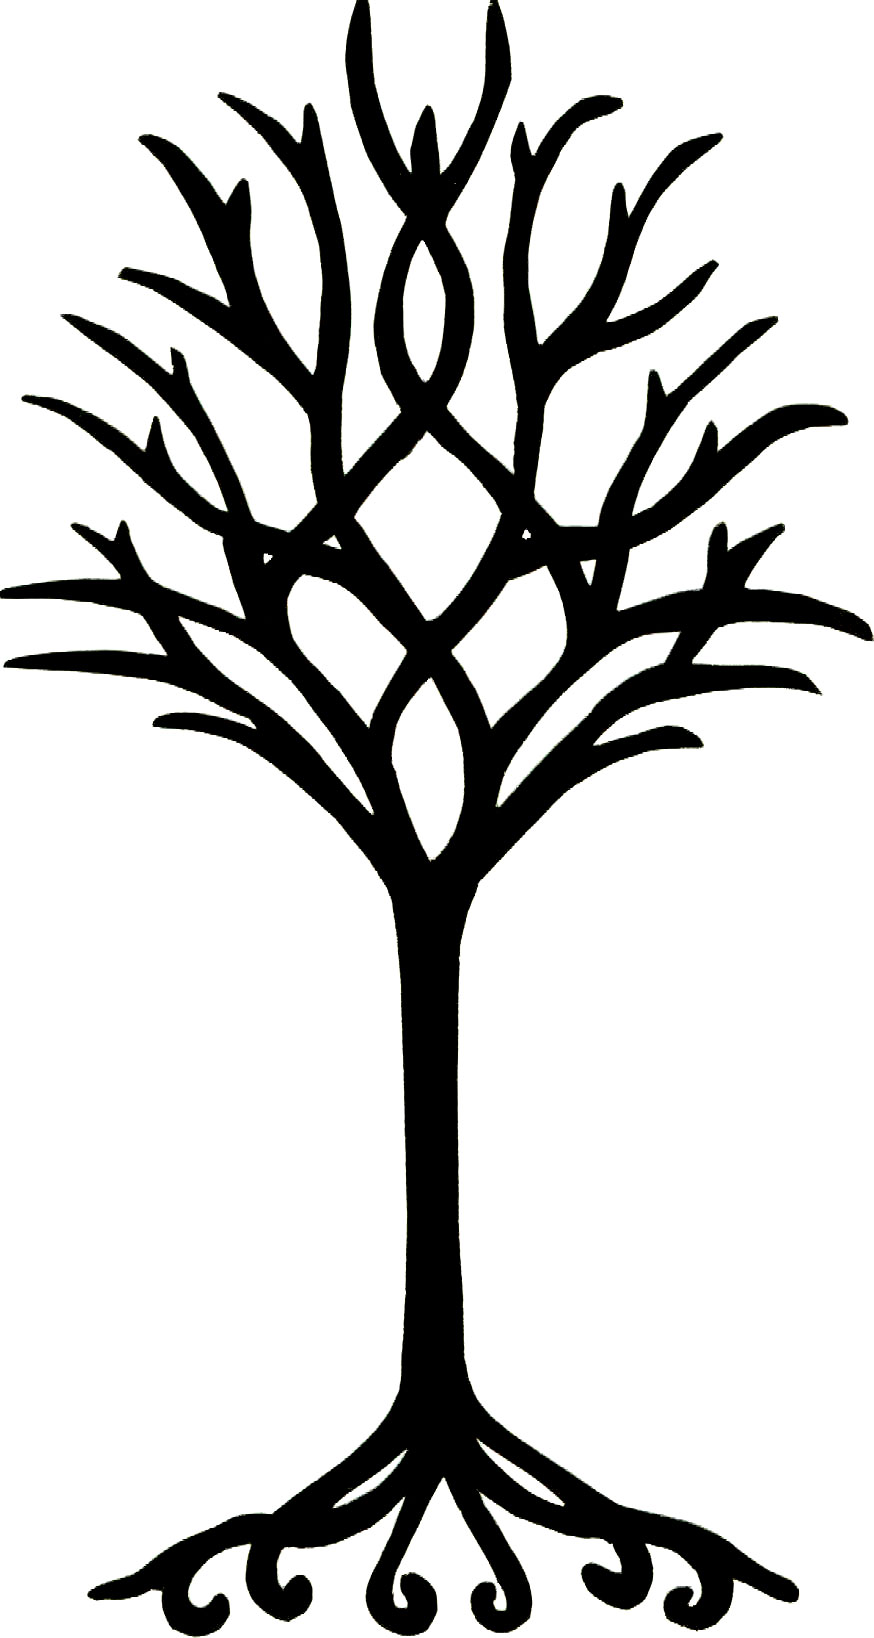 Tree Line Art Design : Line drawing of tree clipart best